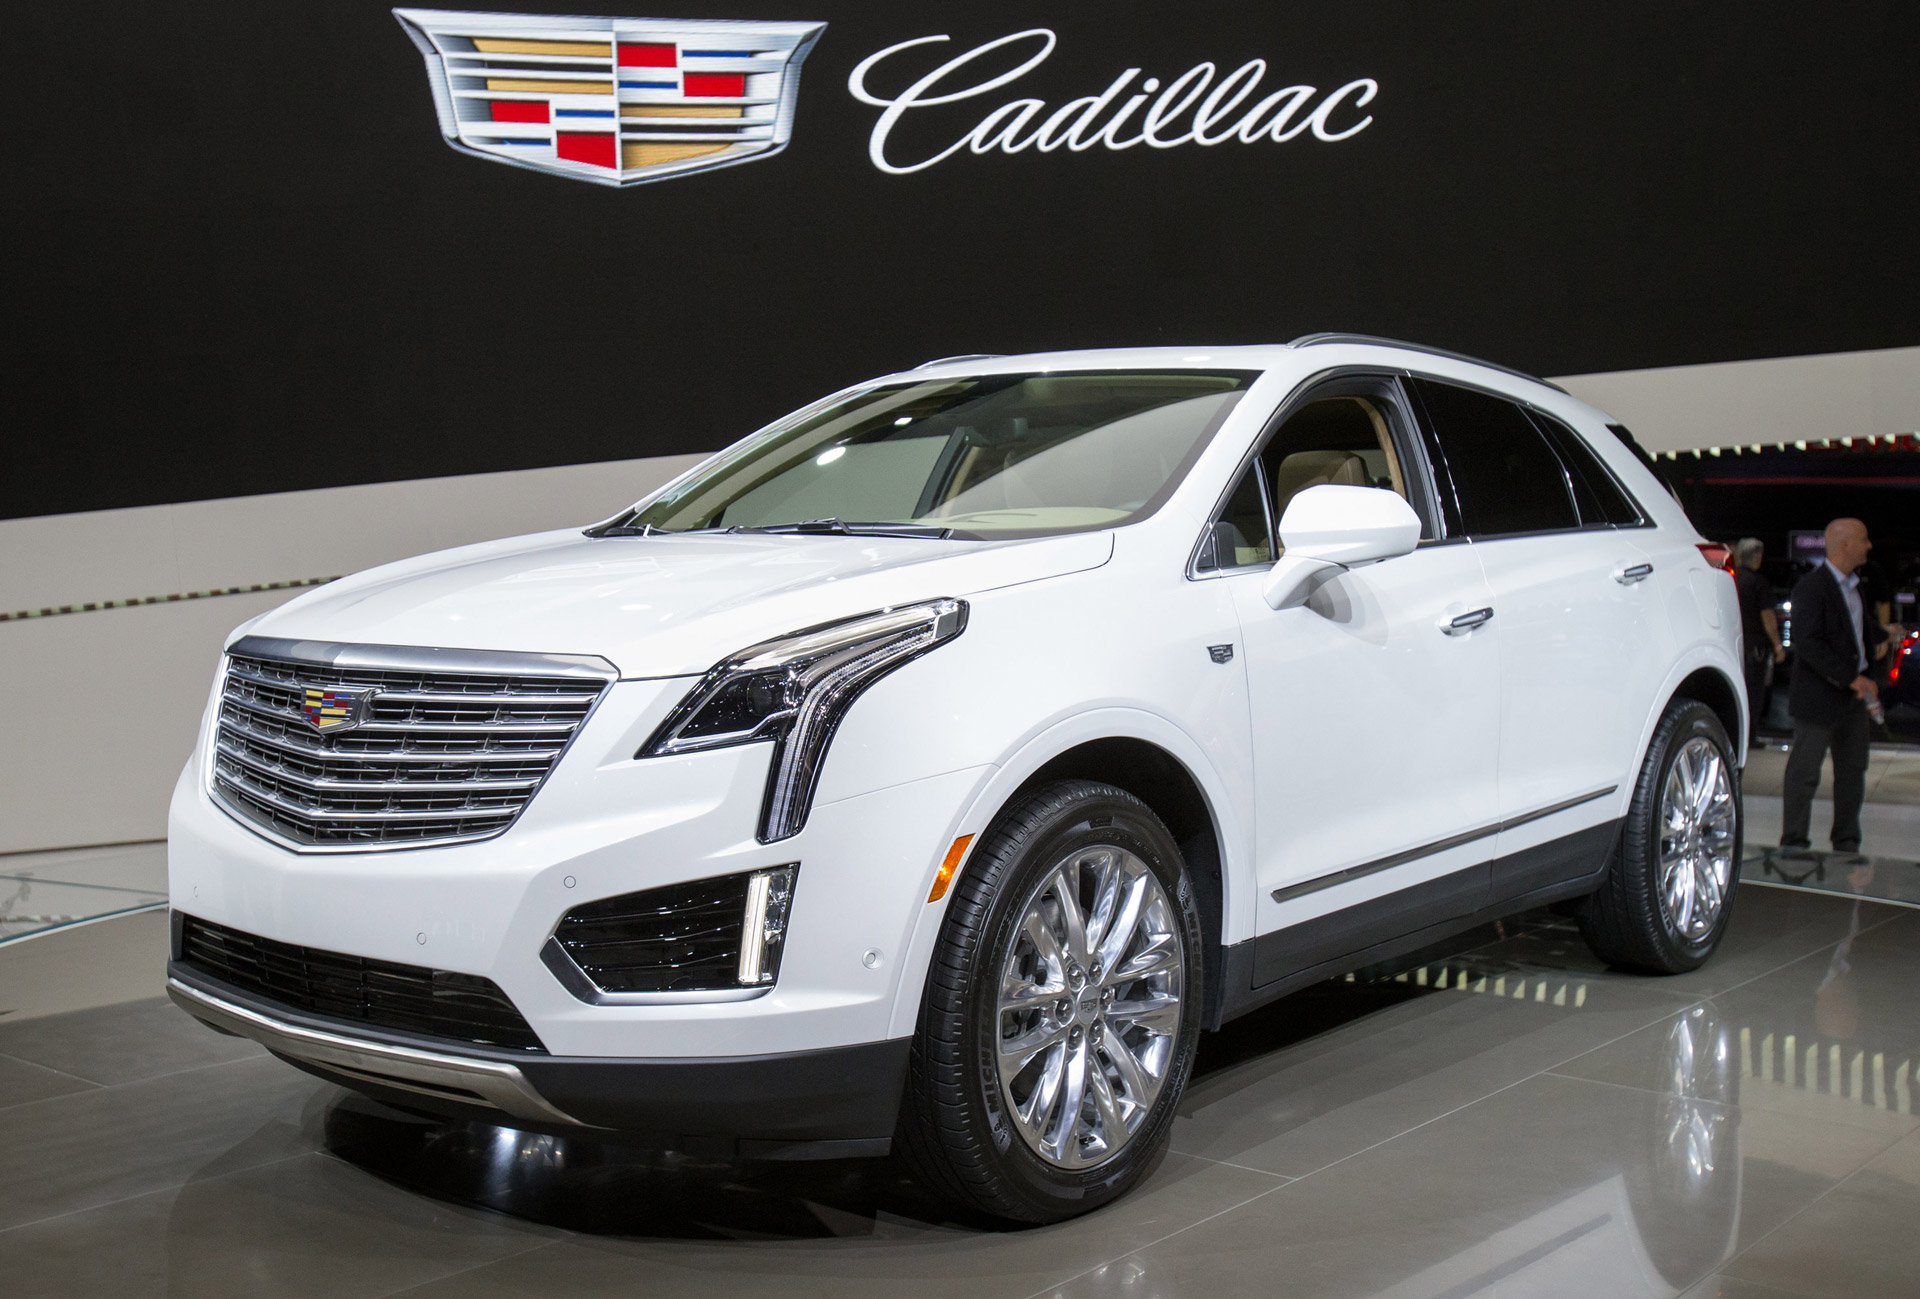 2017 cadillac xt5 preview. Black Bedroom Furniture Sets. Home Design Ideas